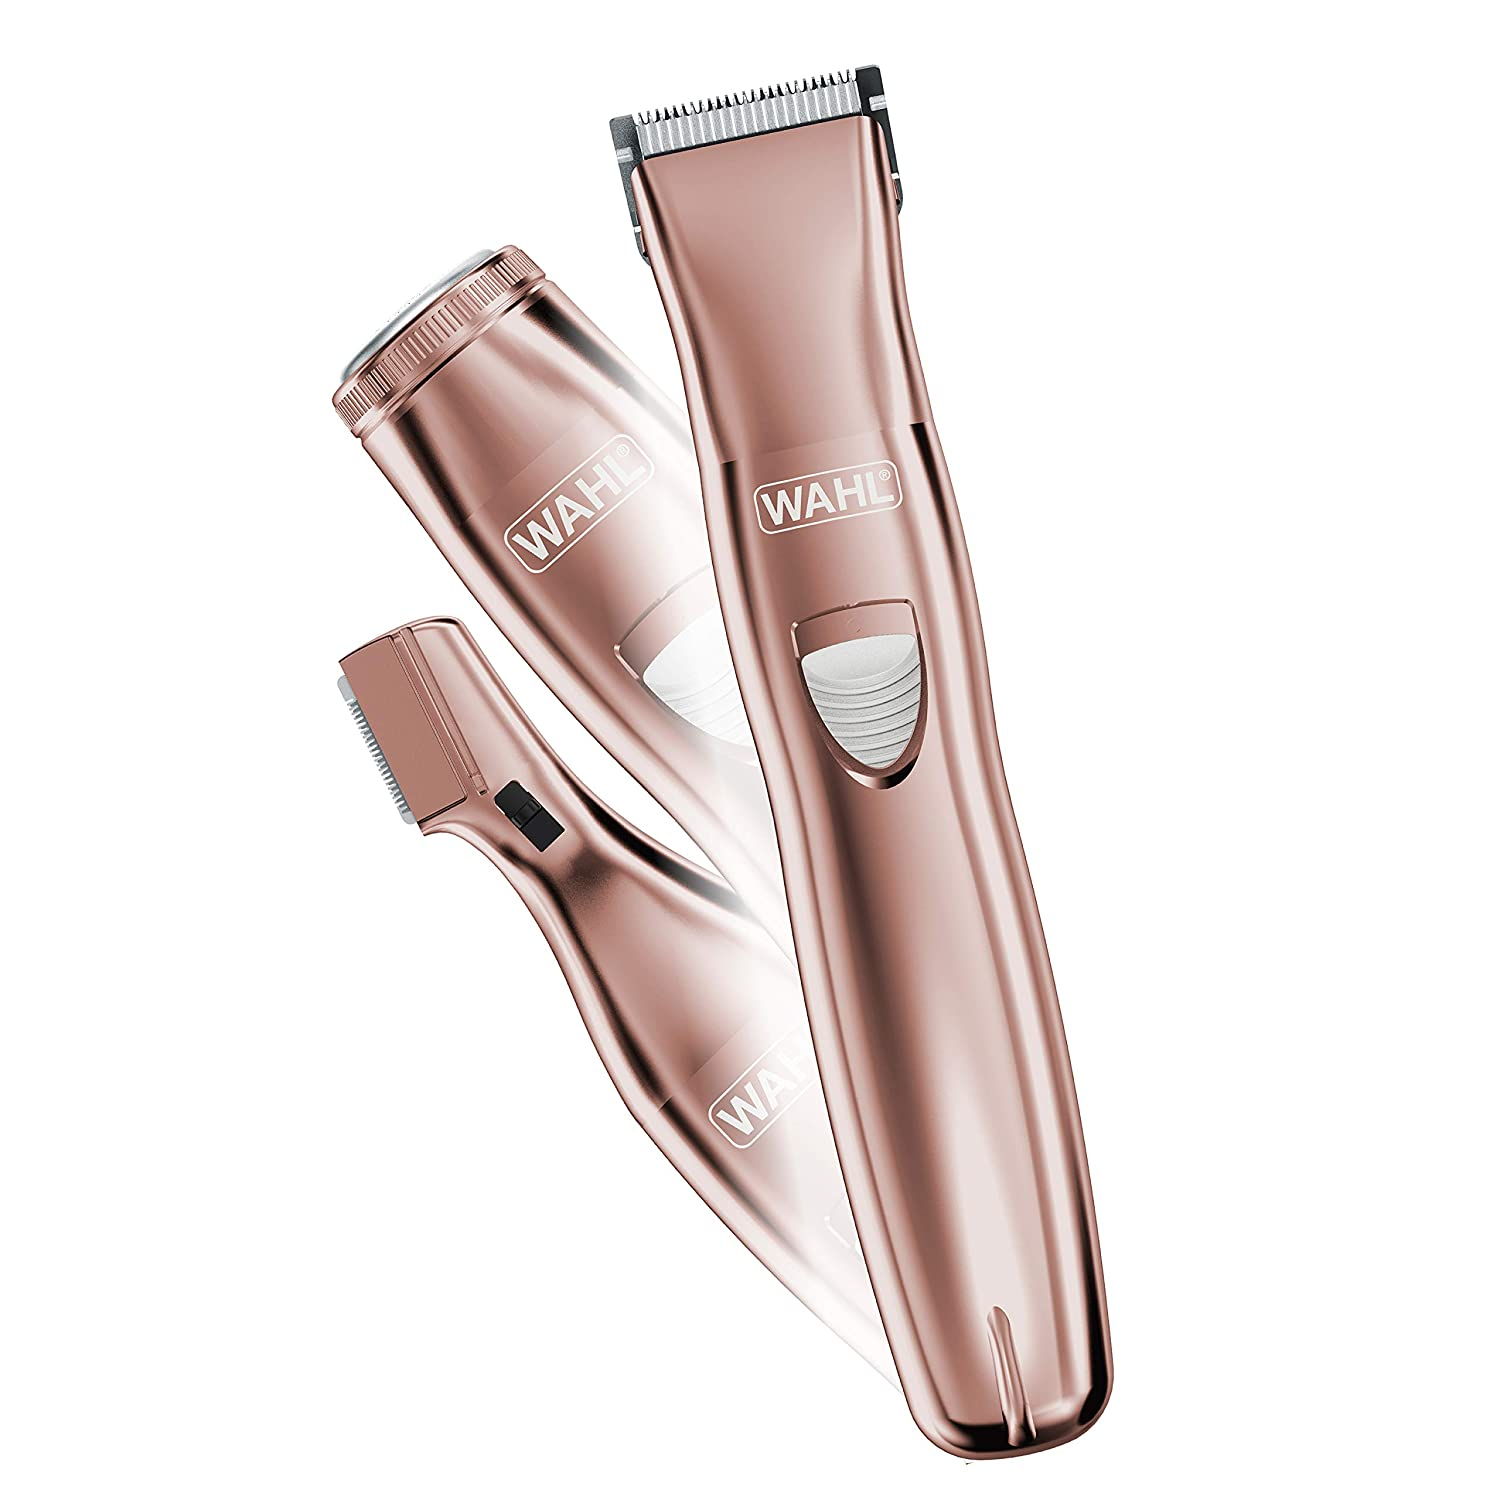 Wahl Pure Confidence Rechargeable Electric Razor, Trimmer, Shaver, & Groomer for Women with 3 Interchangeable Heads